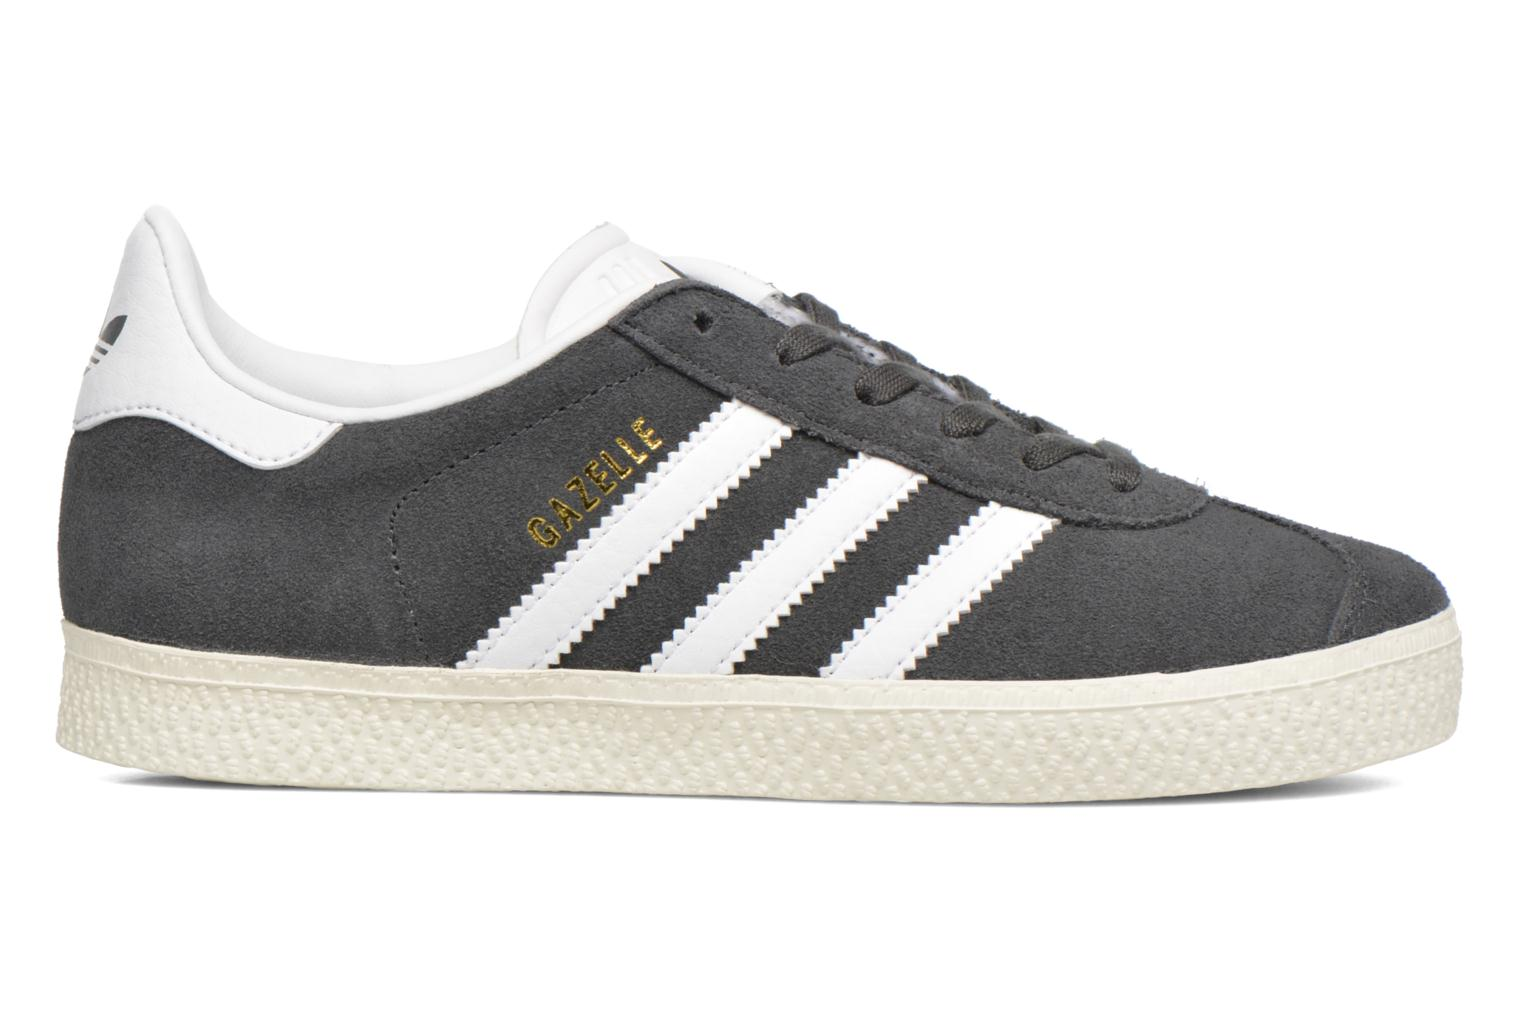 Baskets Adidas Originals Gazelle C Gris vue derrière